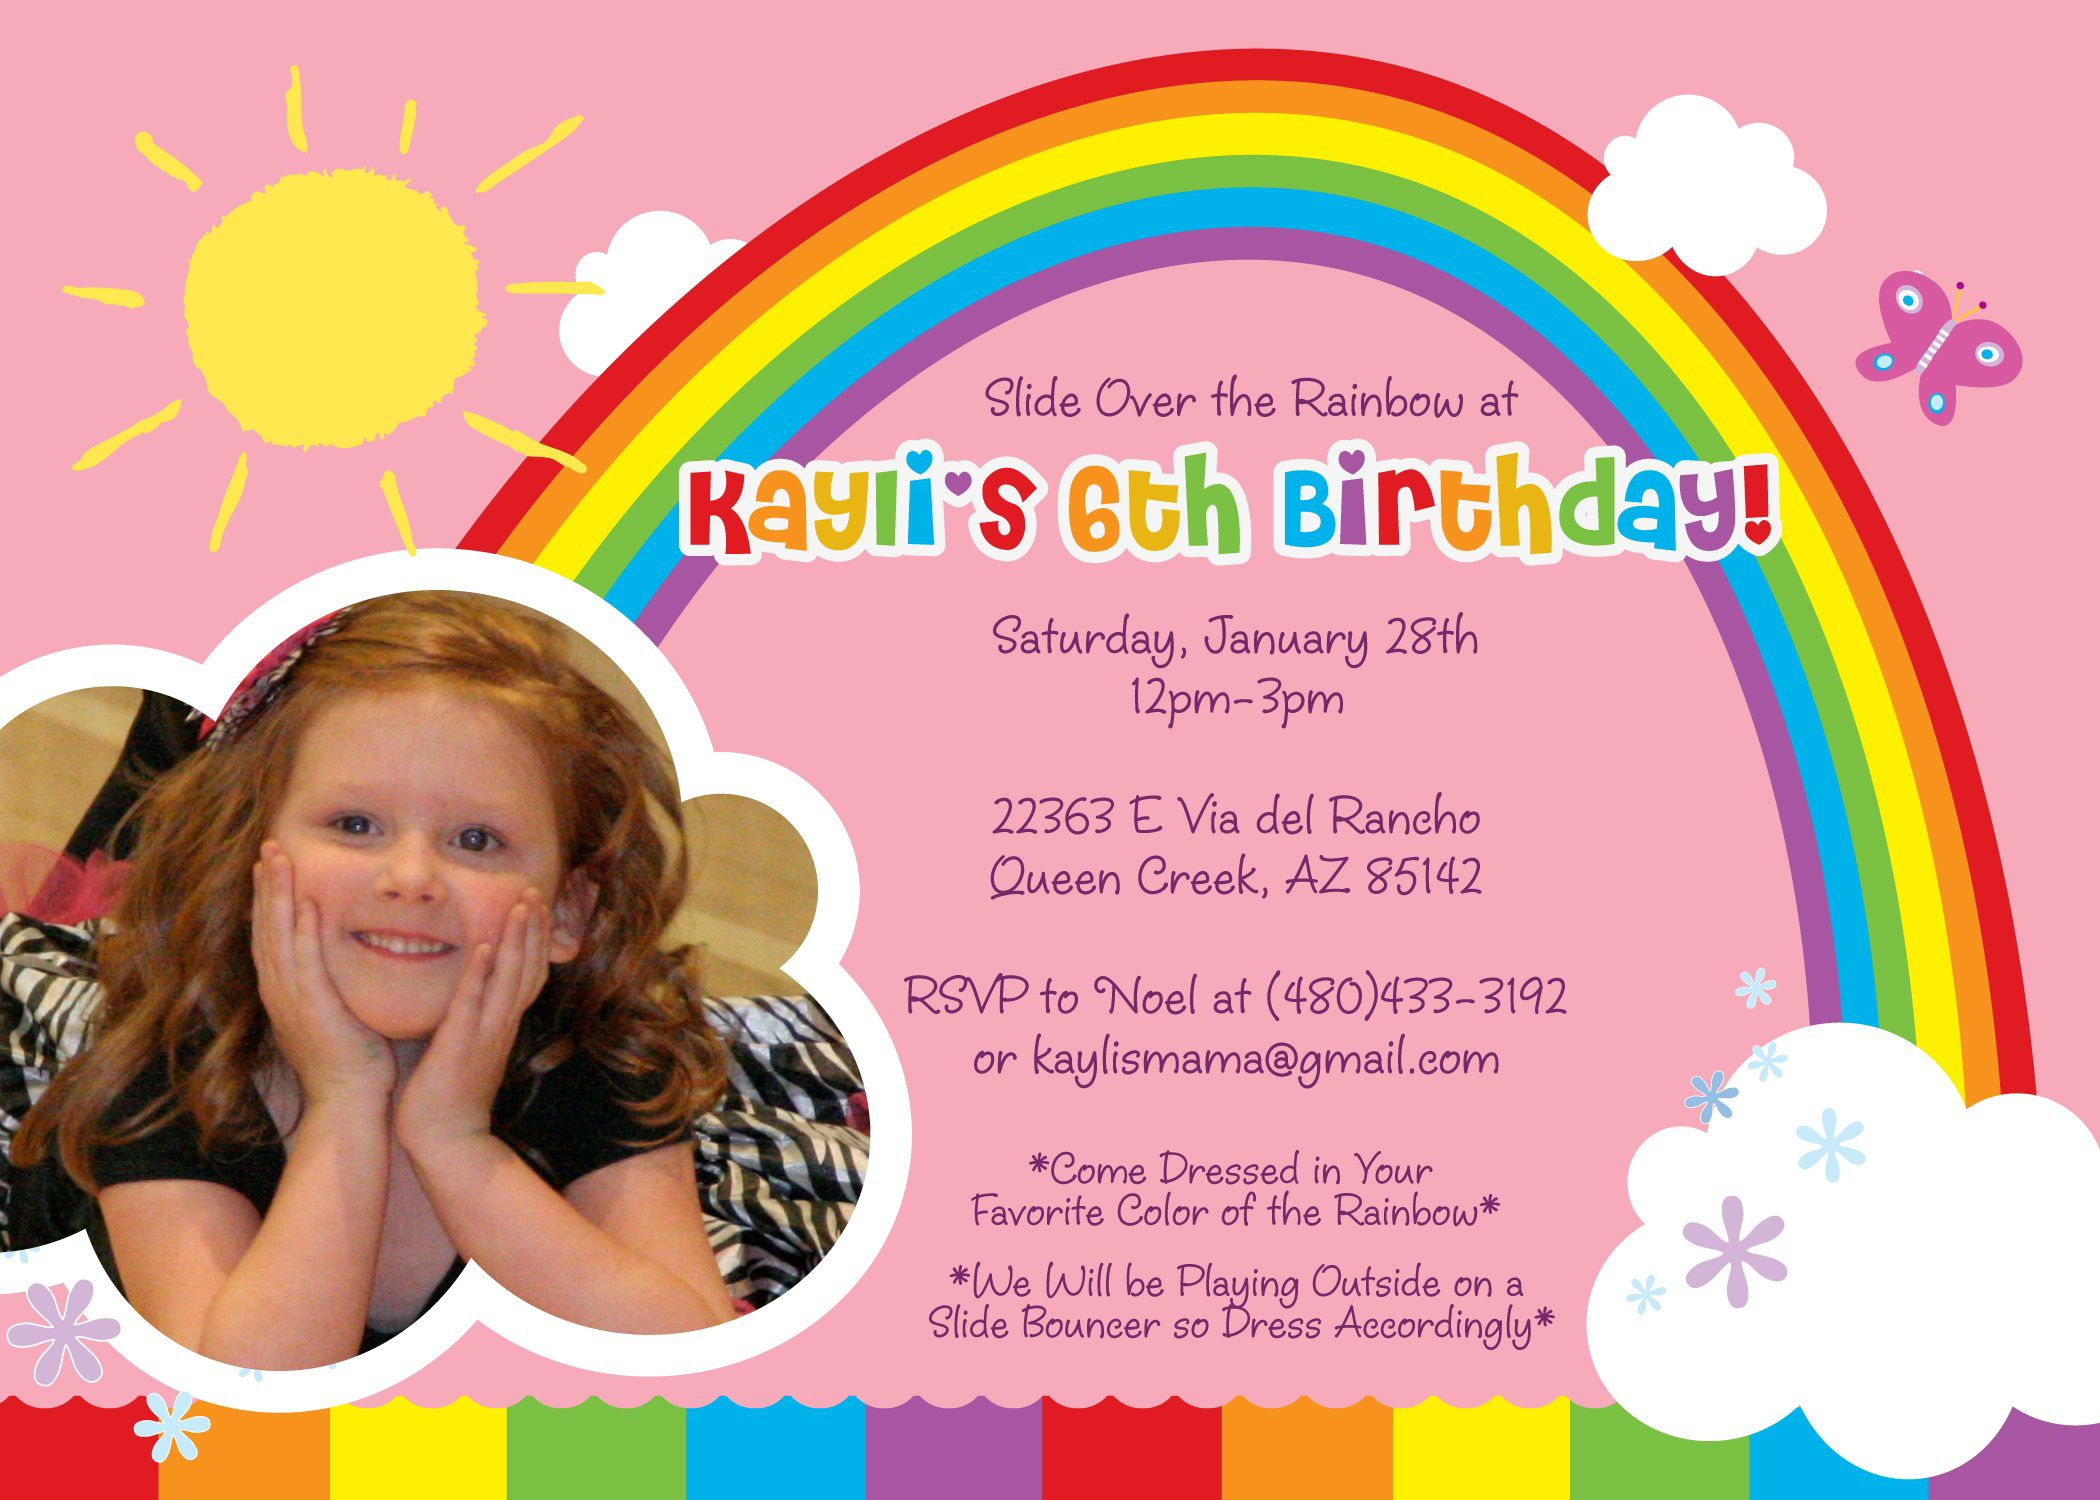 Birthday party invitation template quotes invitation templates birthday party invitation template quotes invitation templates stopboris Gallery